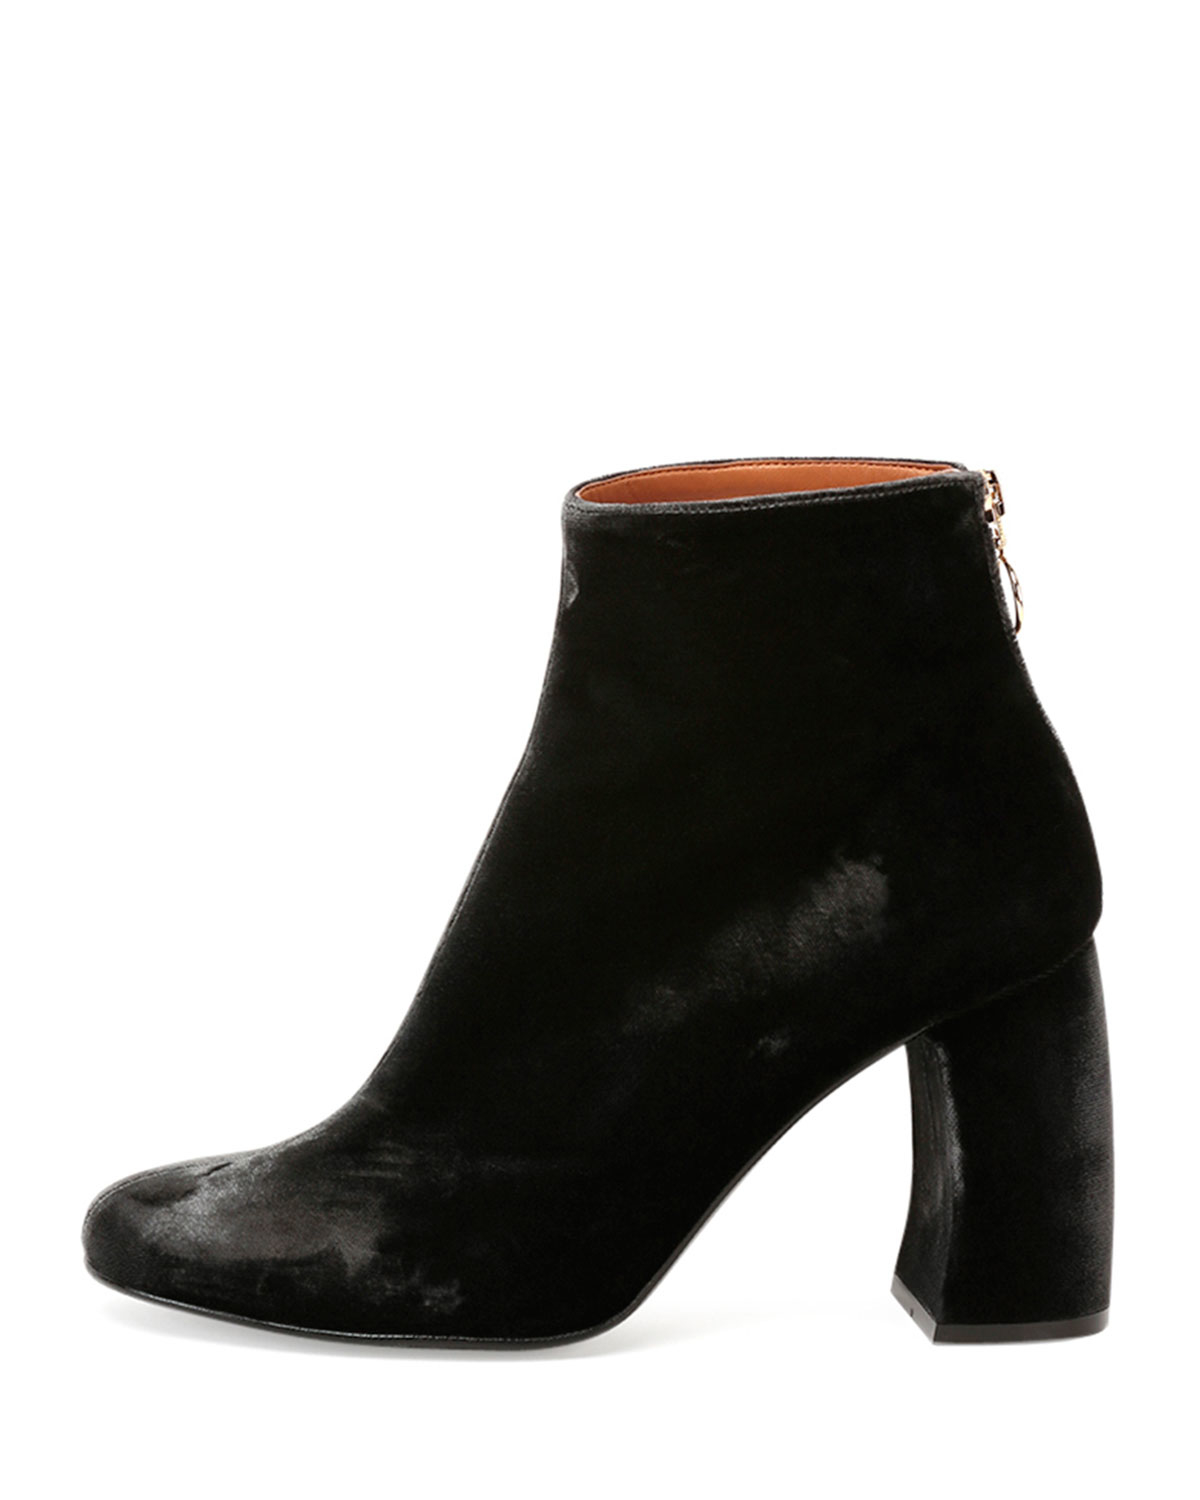 Stella McCartney velvet ankle boots cheap sale looking for clearance outlet cheap sale newest y5lQezsixU